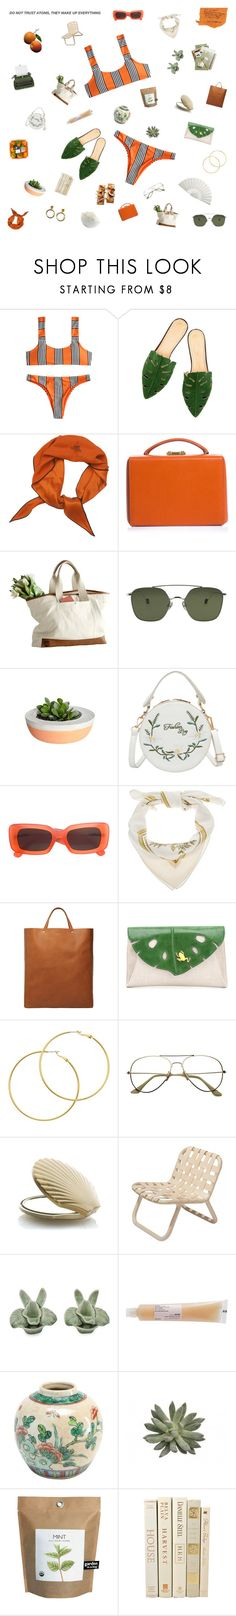 """would you stick around?"" by nostalgicteen ❤ liked on Polyvore featuring Hermès, Amy Winehouse, Mark Cross, Ahlem, LIST, Linda Farrow, Gabriella, Charlotte Olympia, Melissa Odabash and Normann Copenhagen"